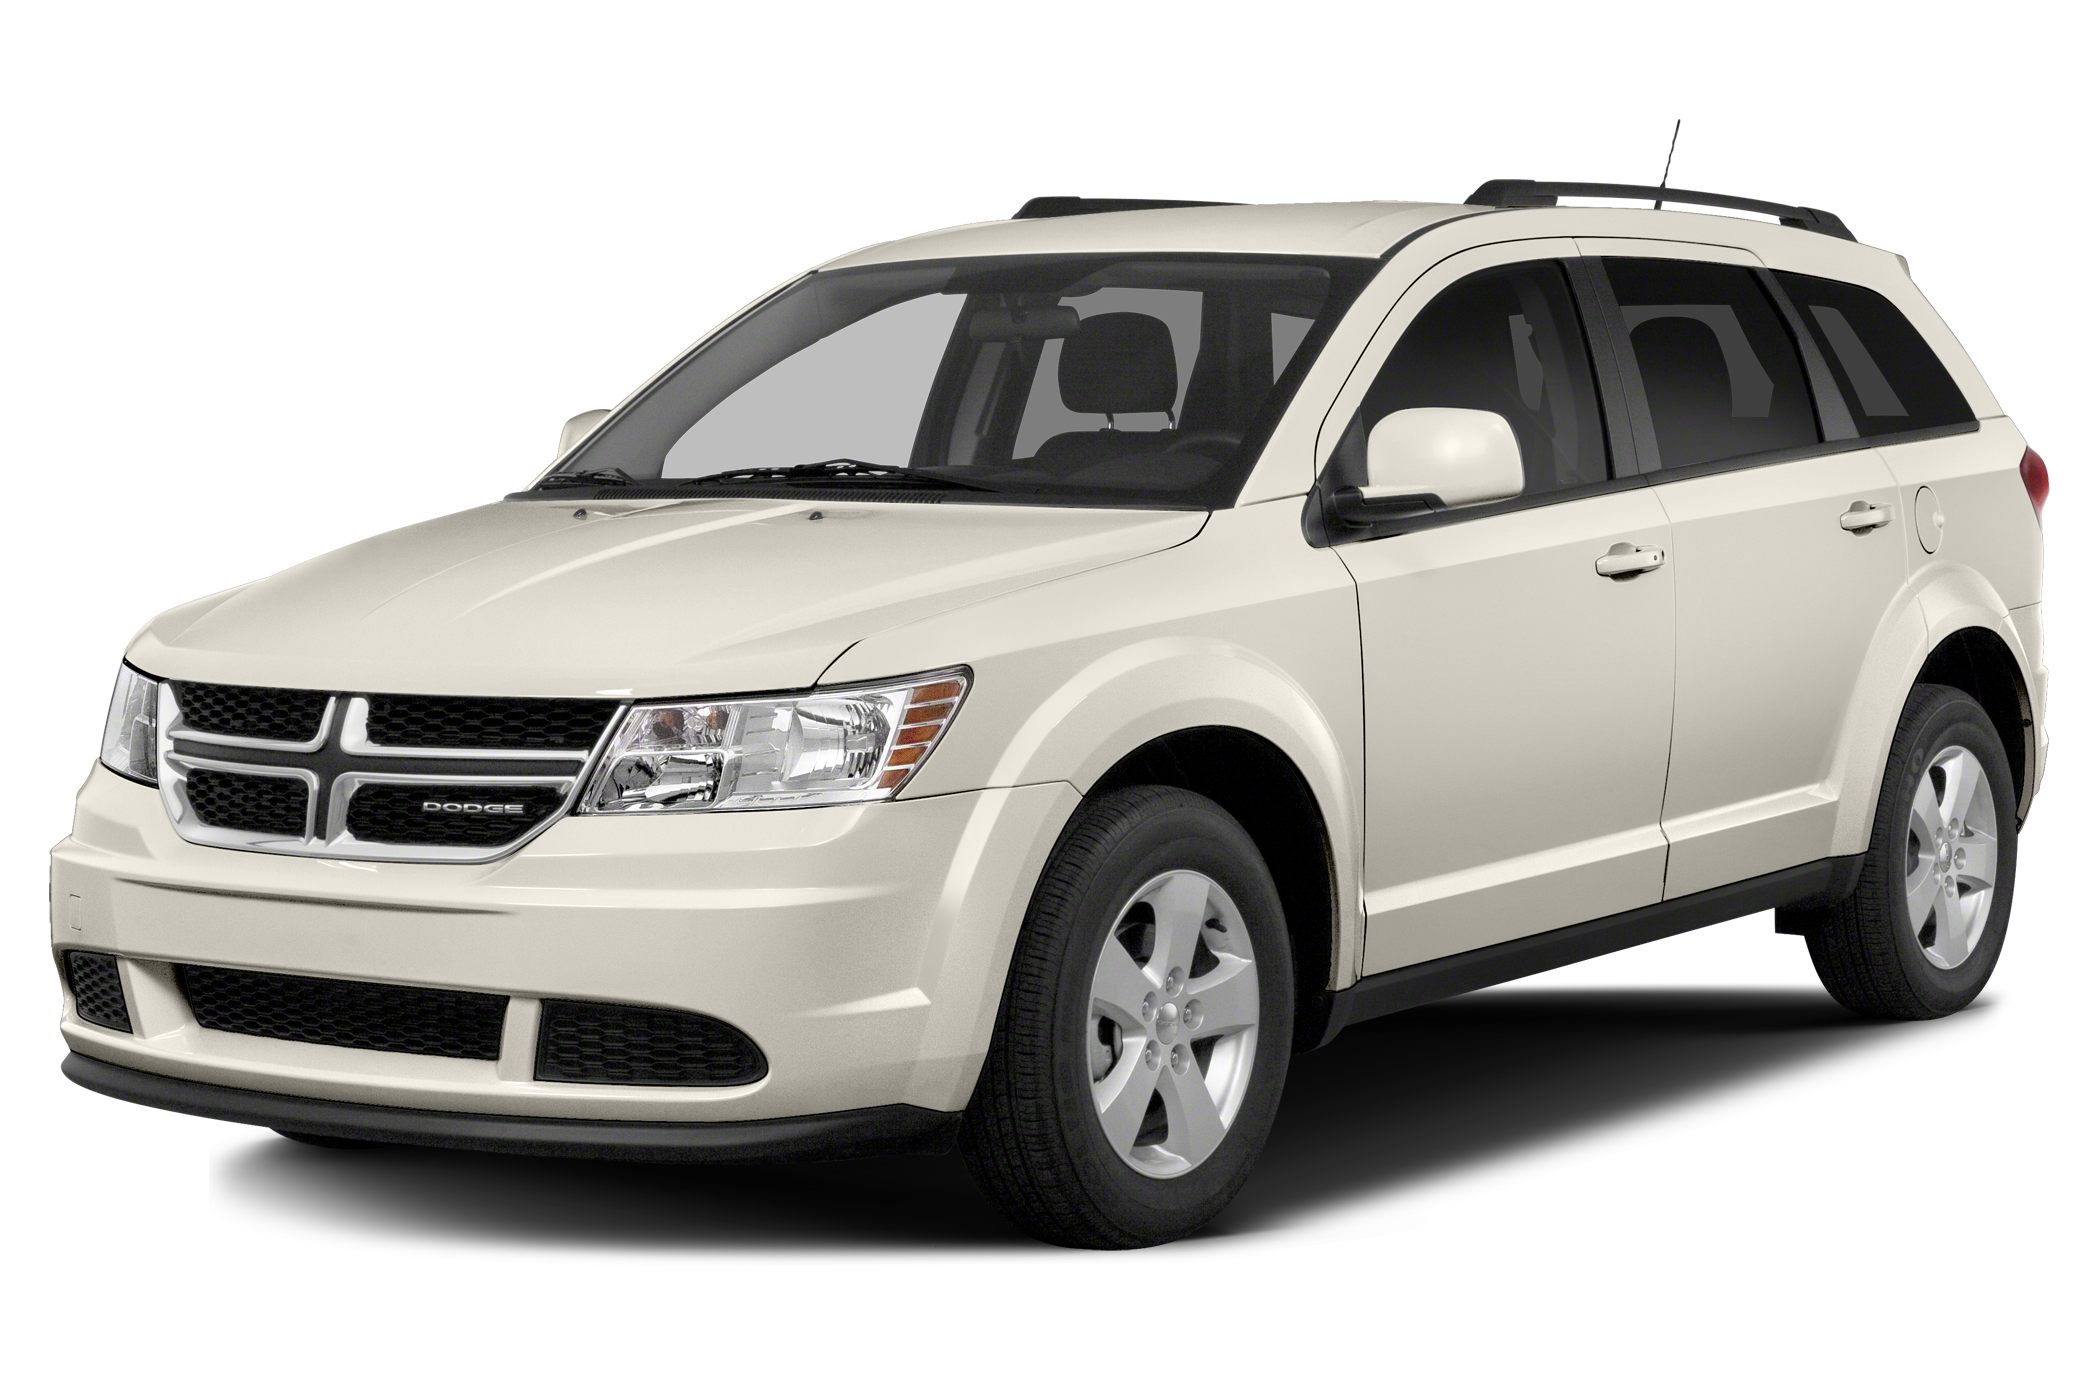 2015 Dodge Journey SXT SUV for sale in Tacoma for $32,760 with 0 miles.